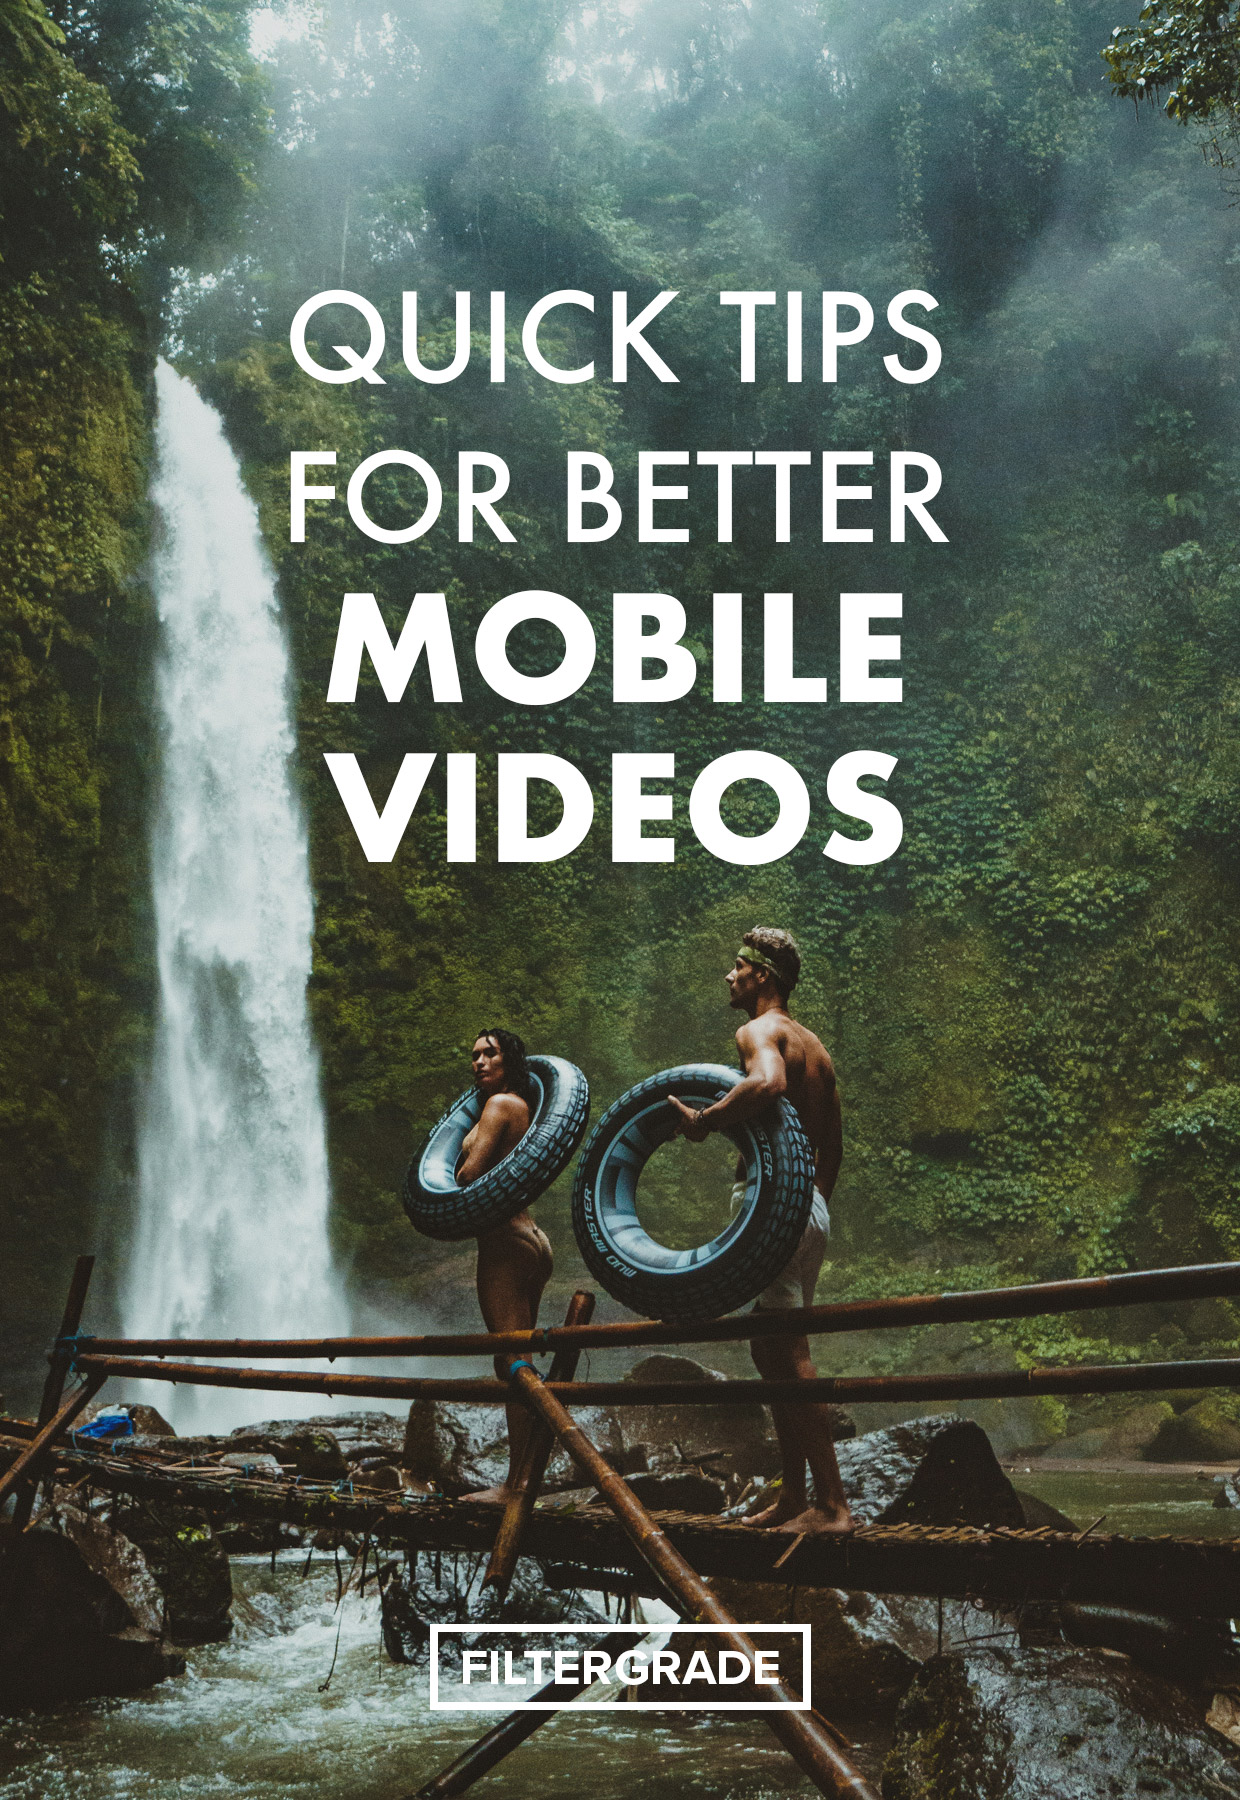 Quick Tips for Better Mobile